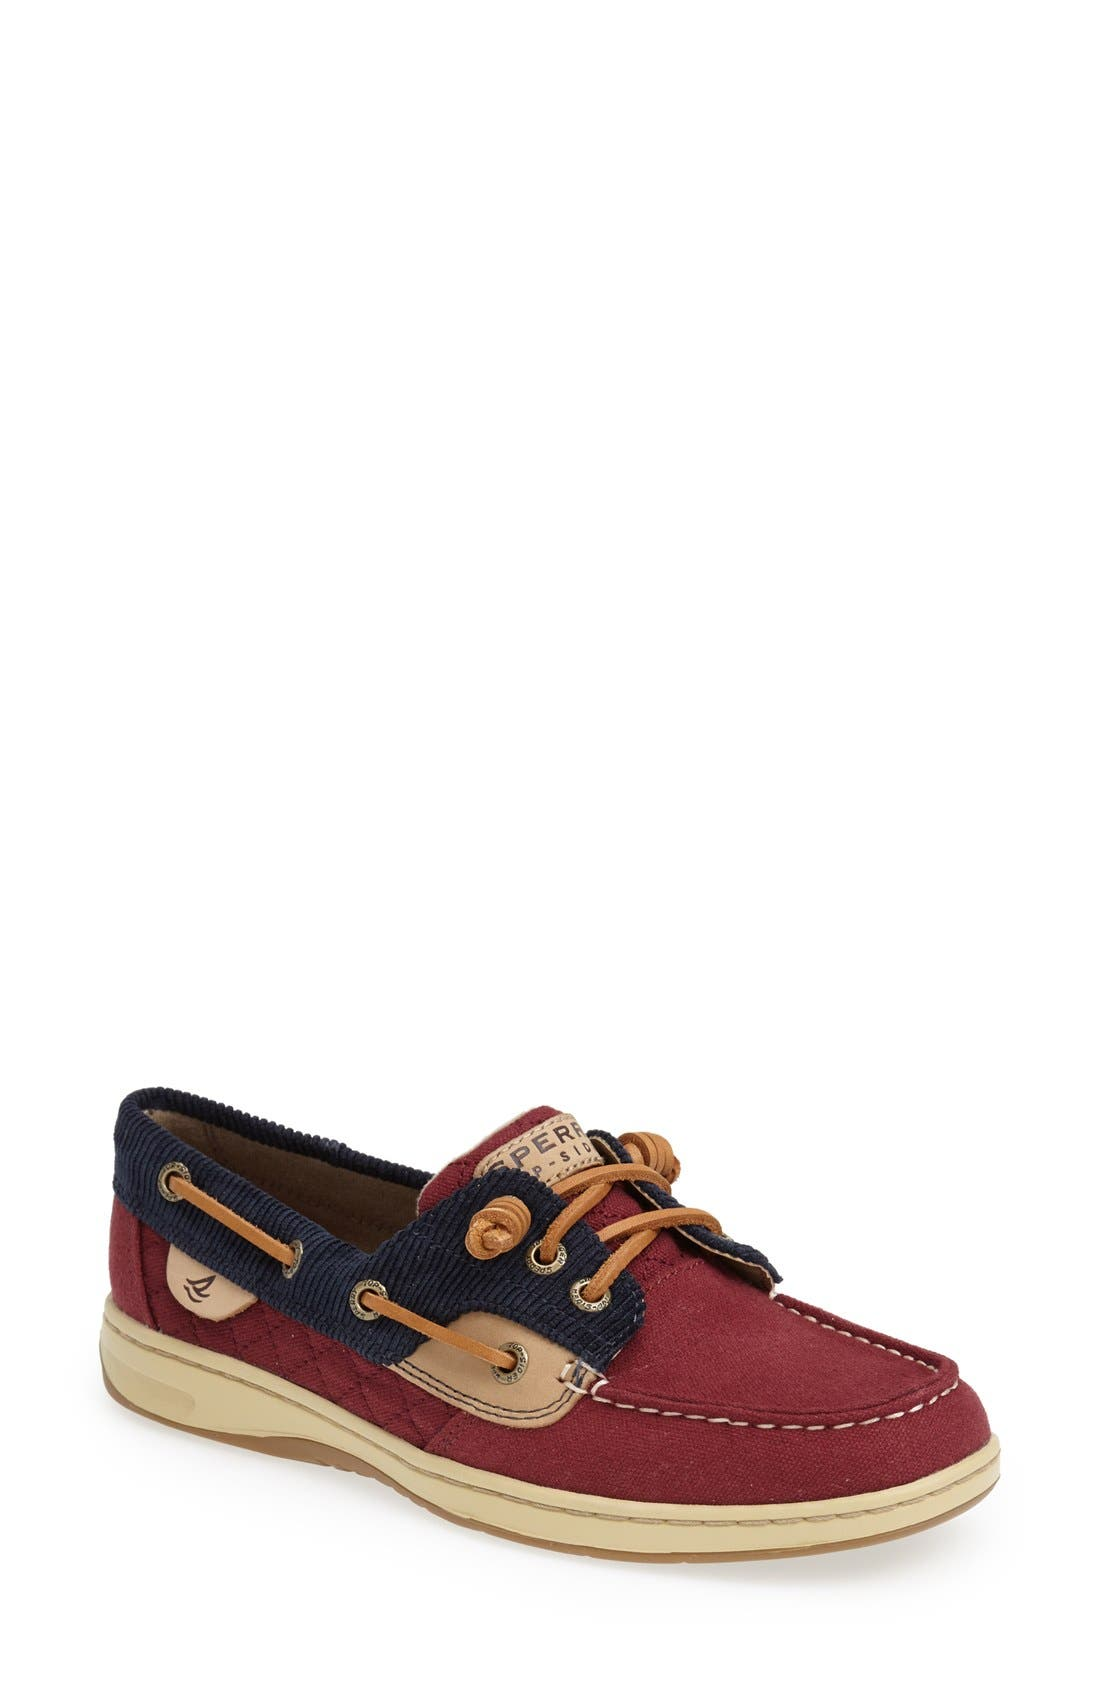 Alternate Image 1 Selected - Sperry 'Ivyfish' Boat Shoe (Women)